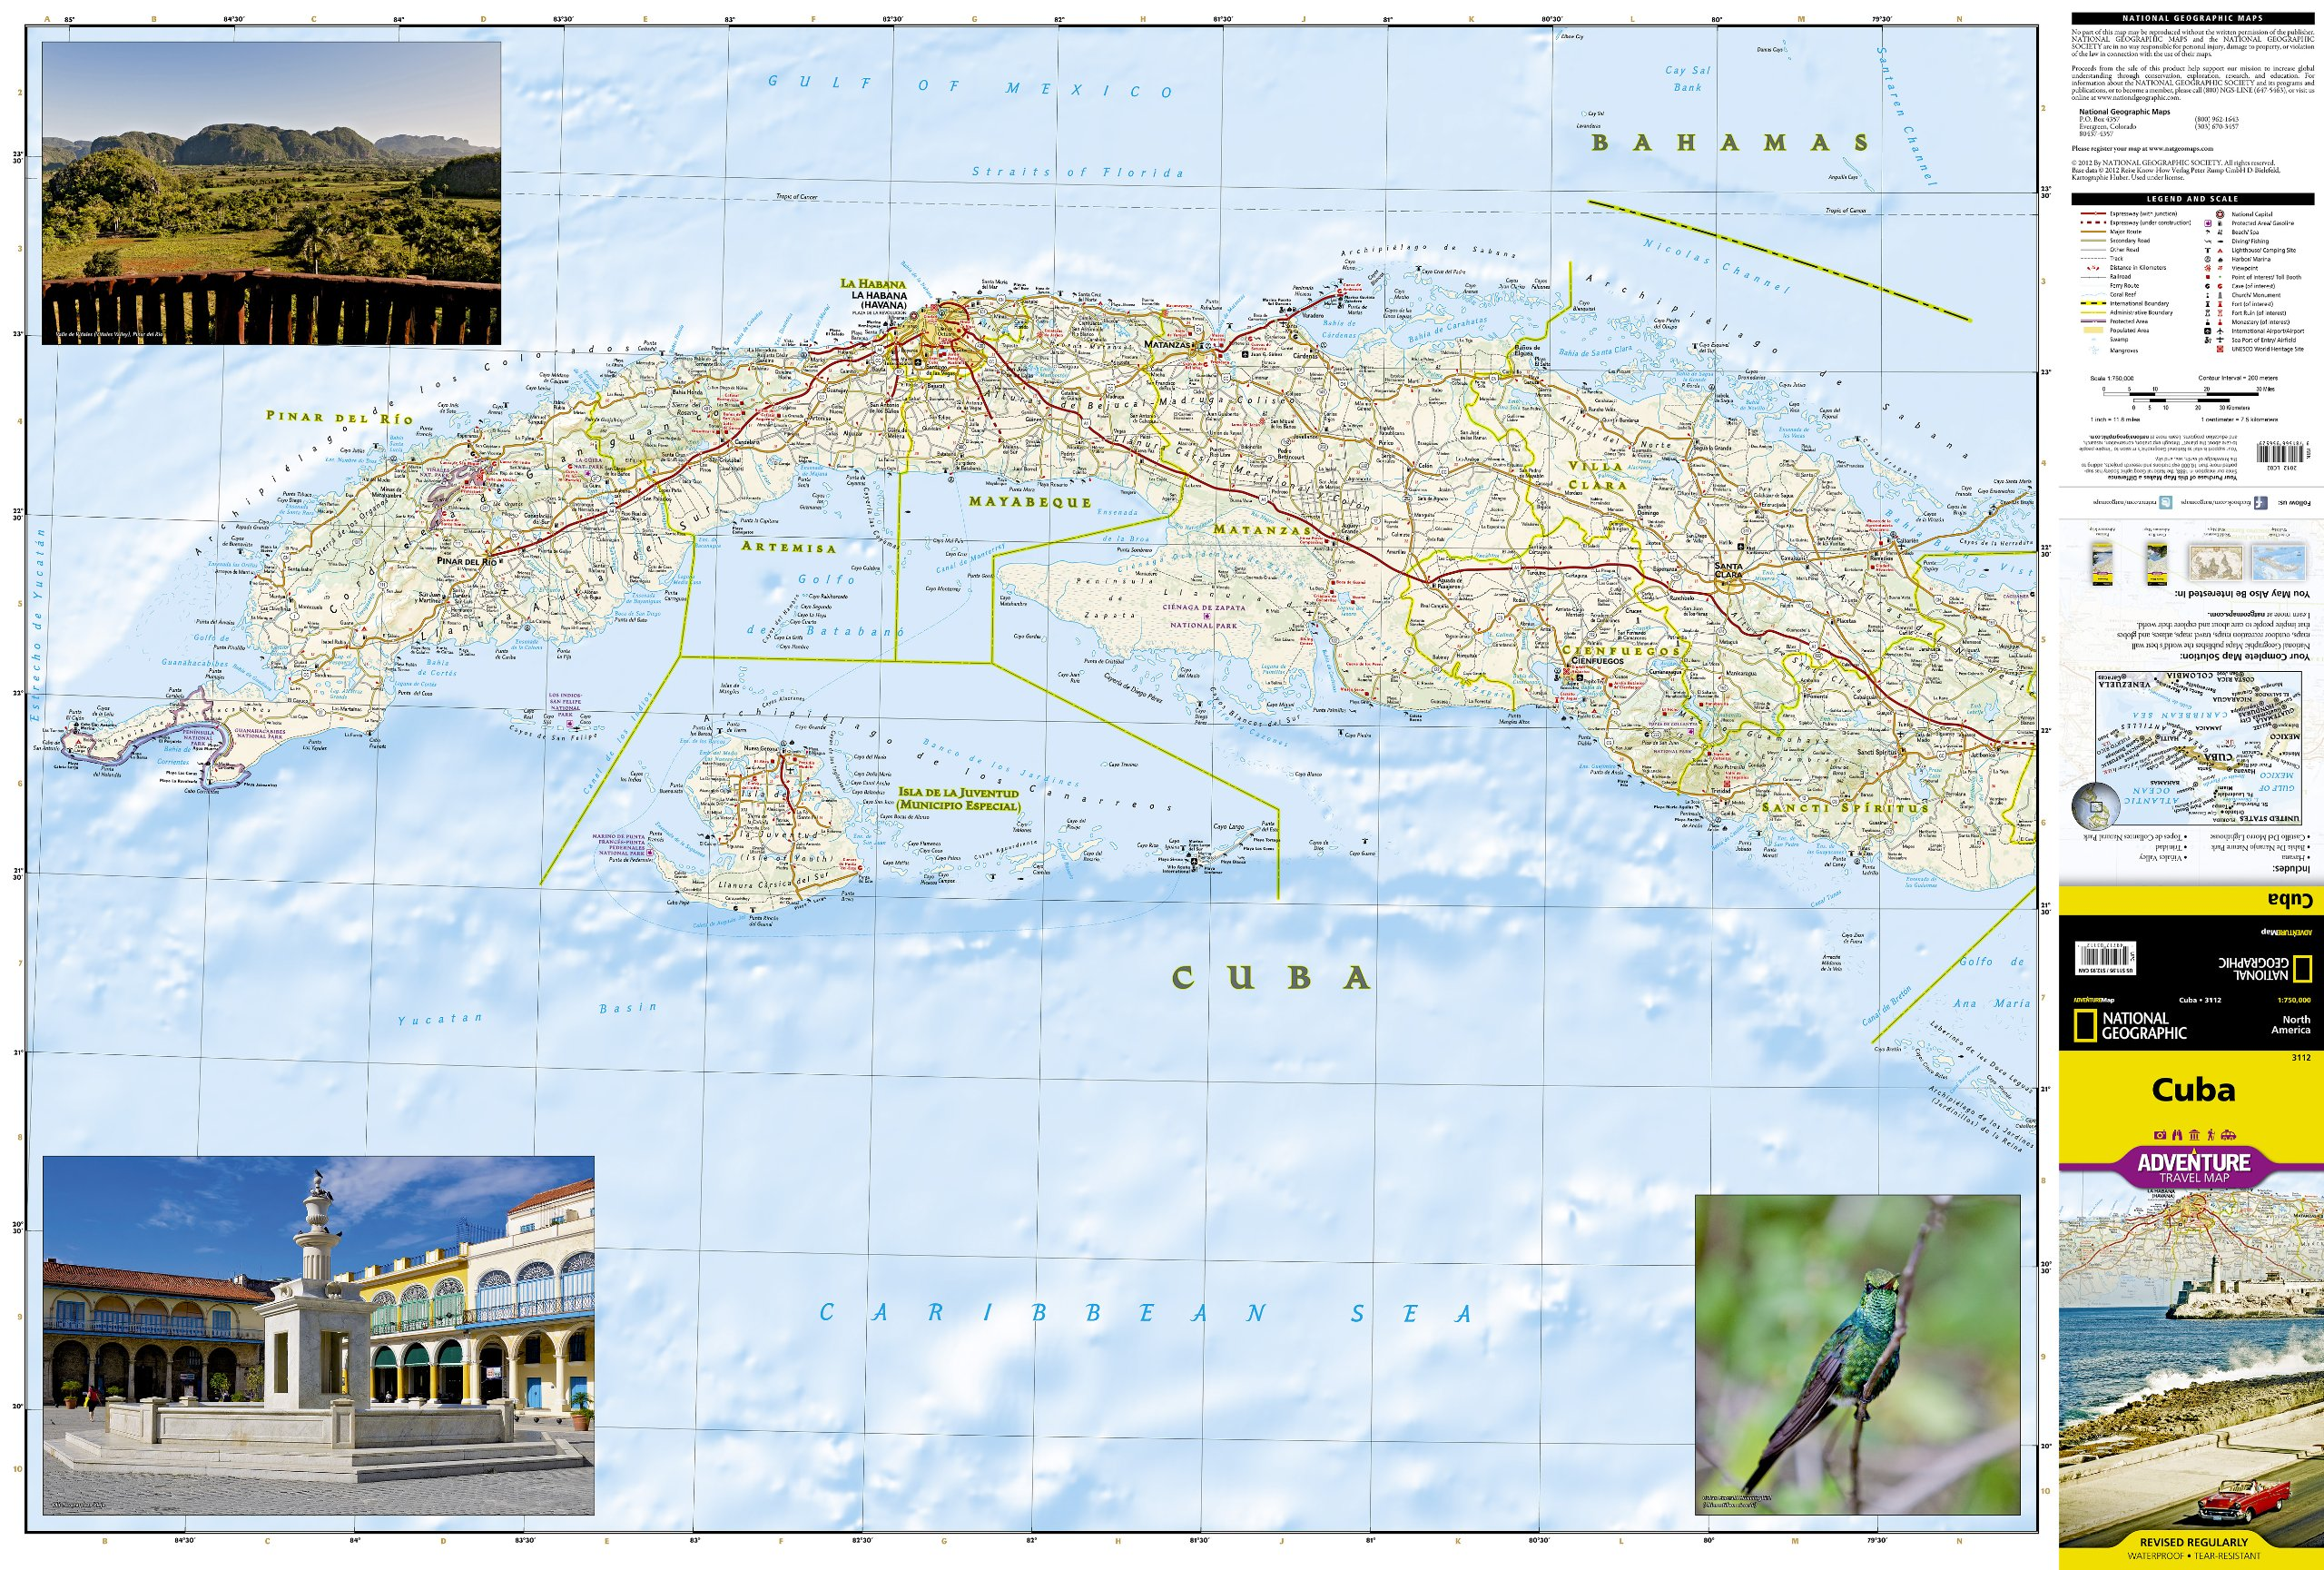 Cuba (National Geographic Adventure Map): National Geographic Maps on